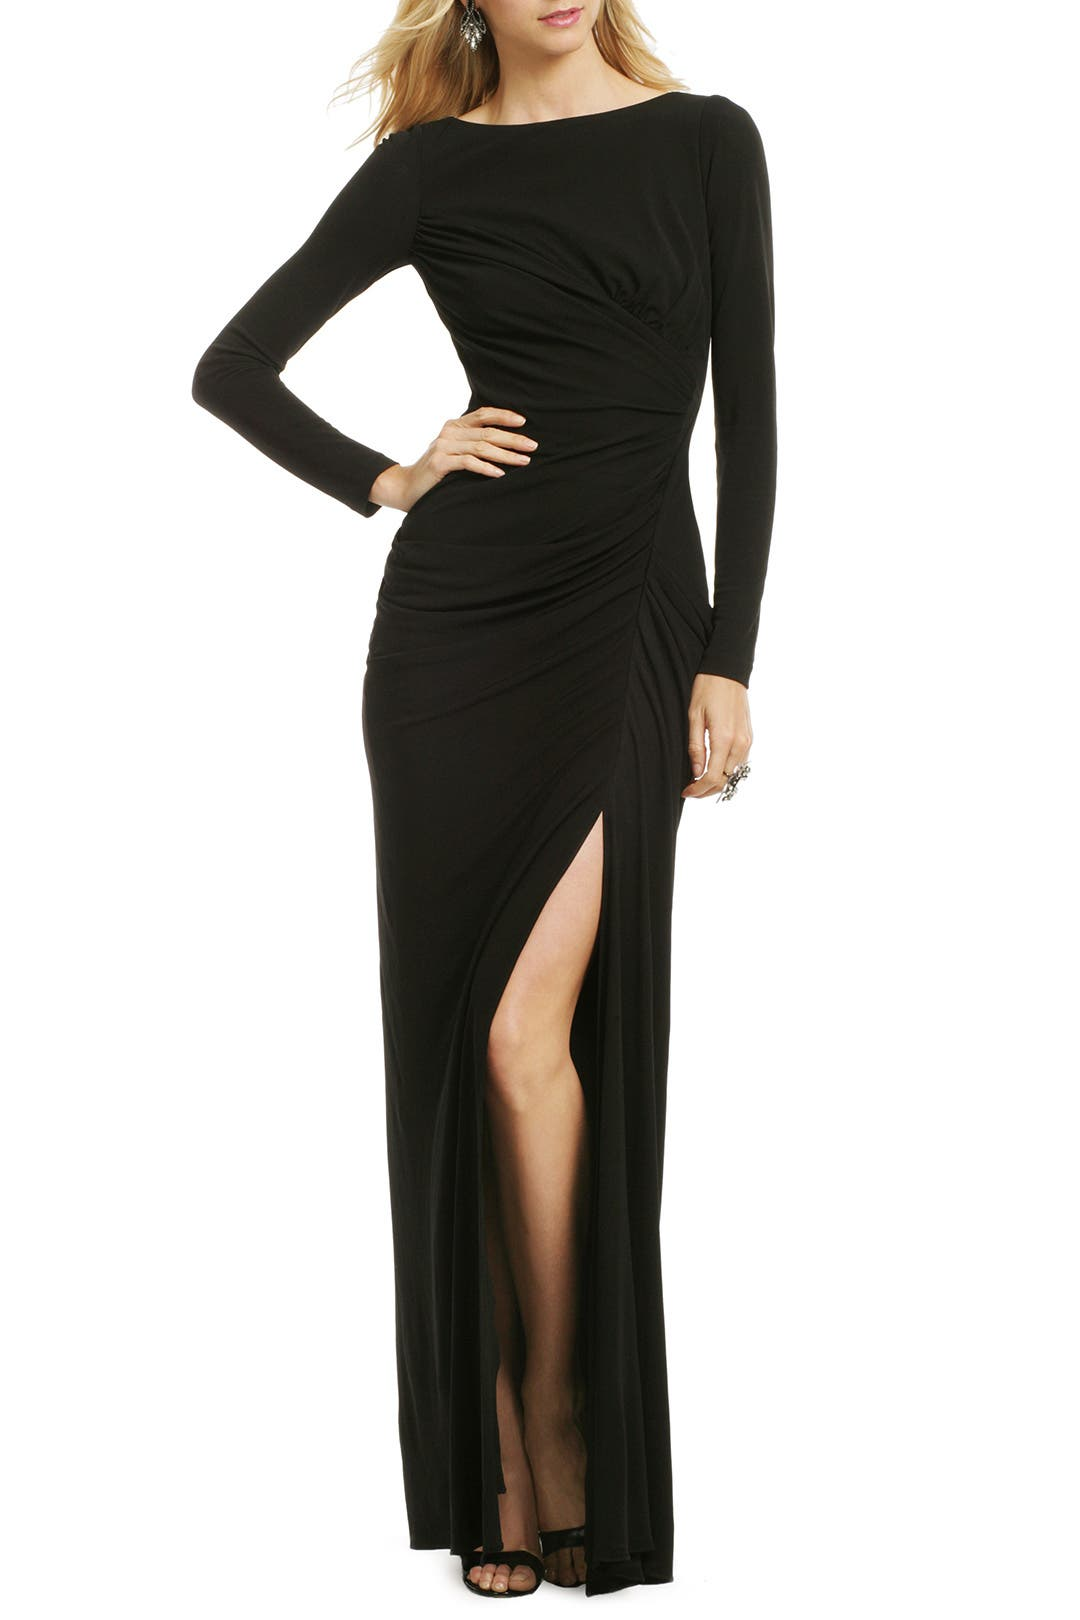 Dresses - Badgley Mischka Great selection and prices for Wedding ...